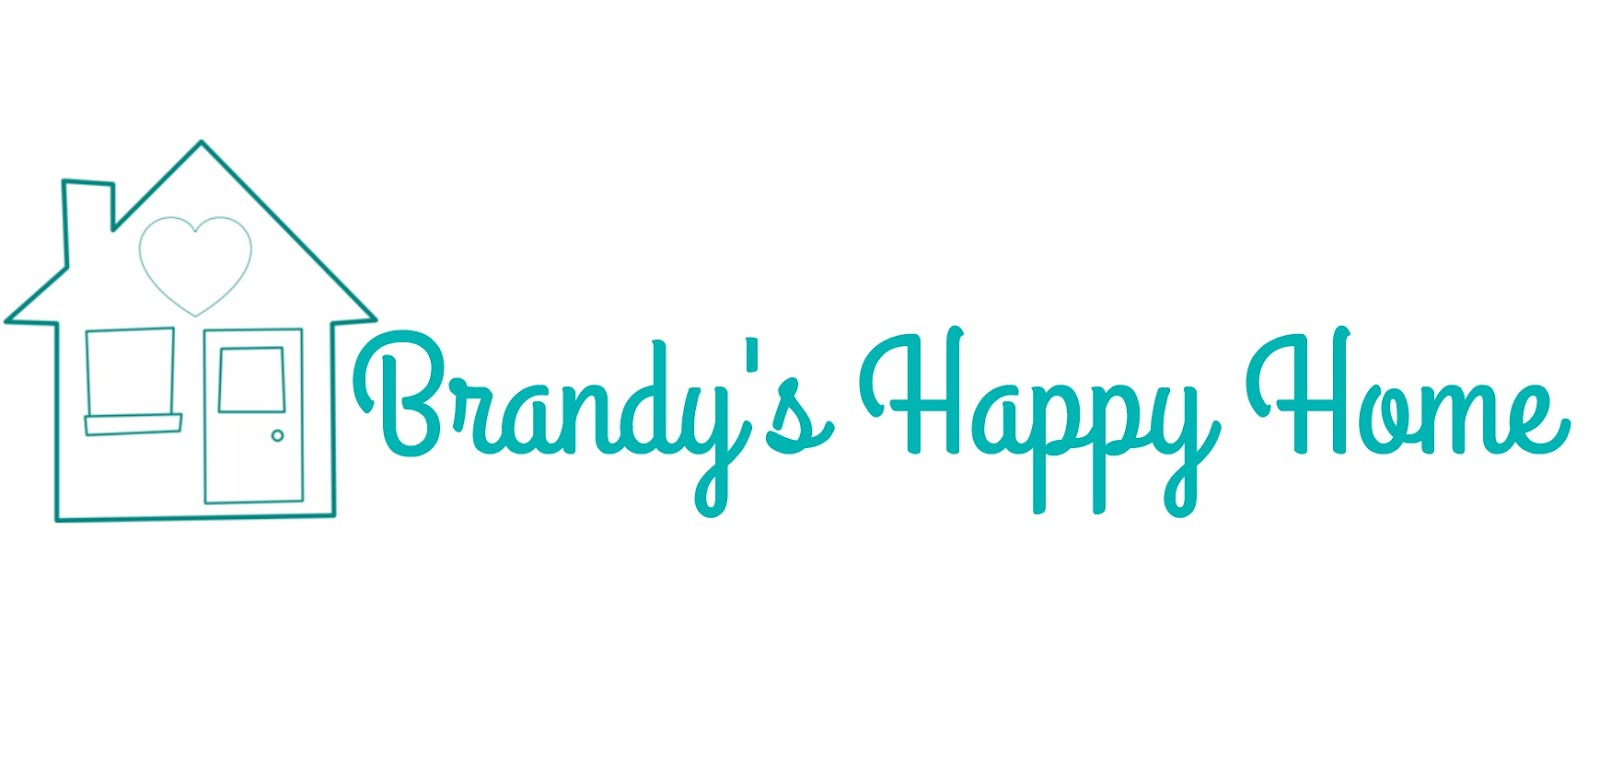 See what Brandy is up to at home!